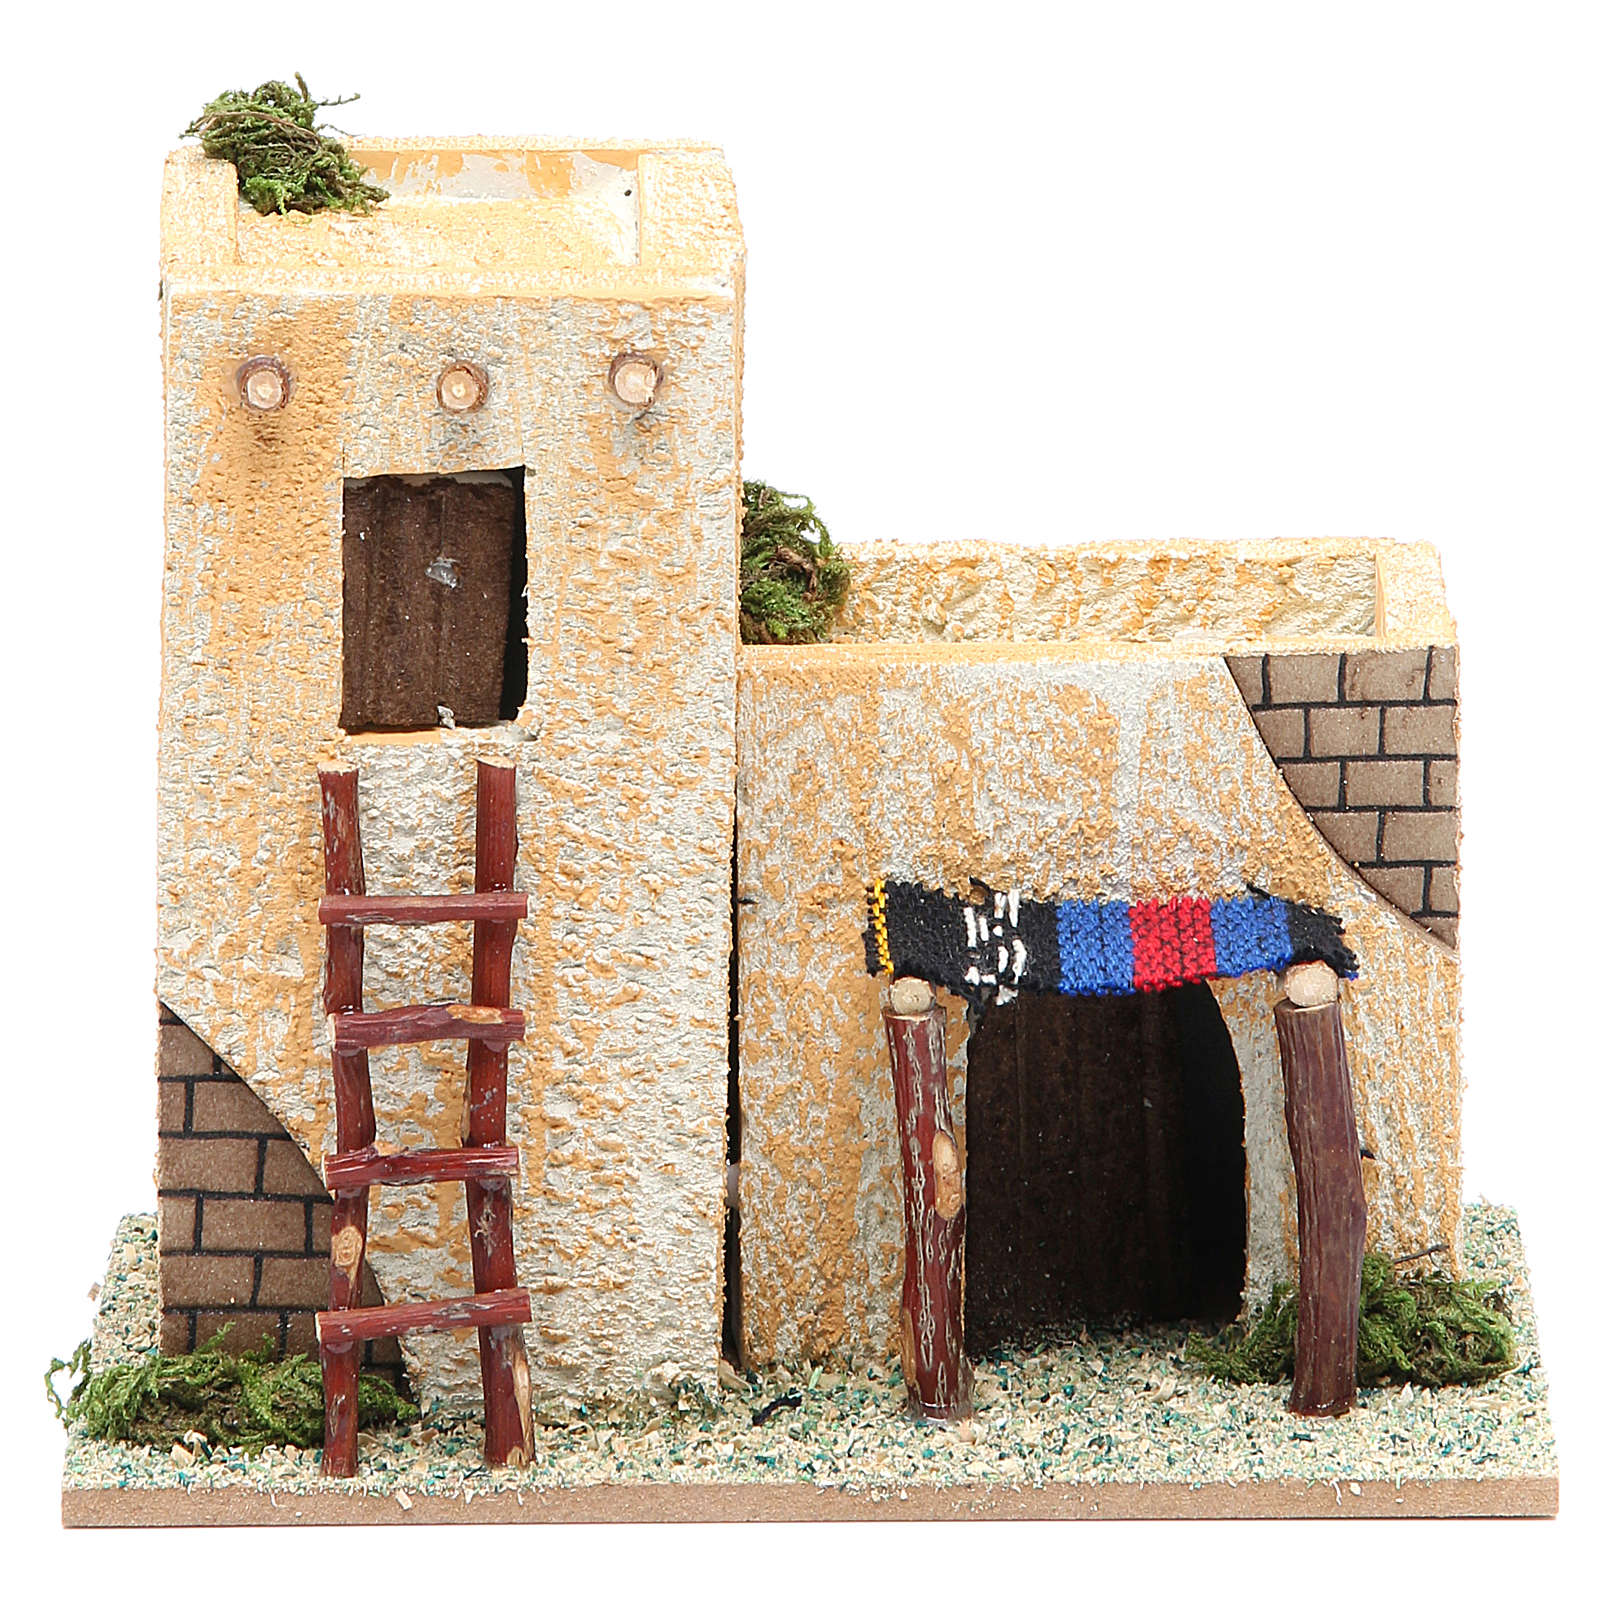 Arabian style house measuring 16x11x14, assorted models 4